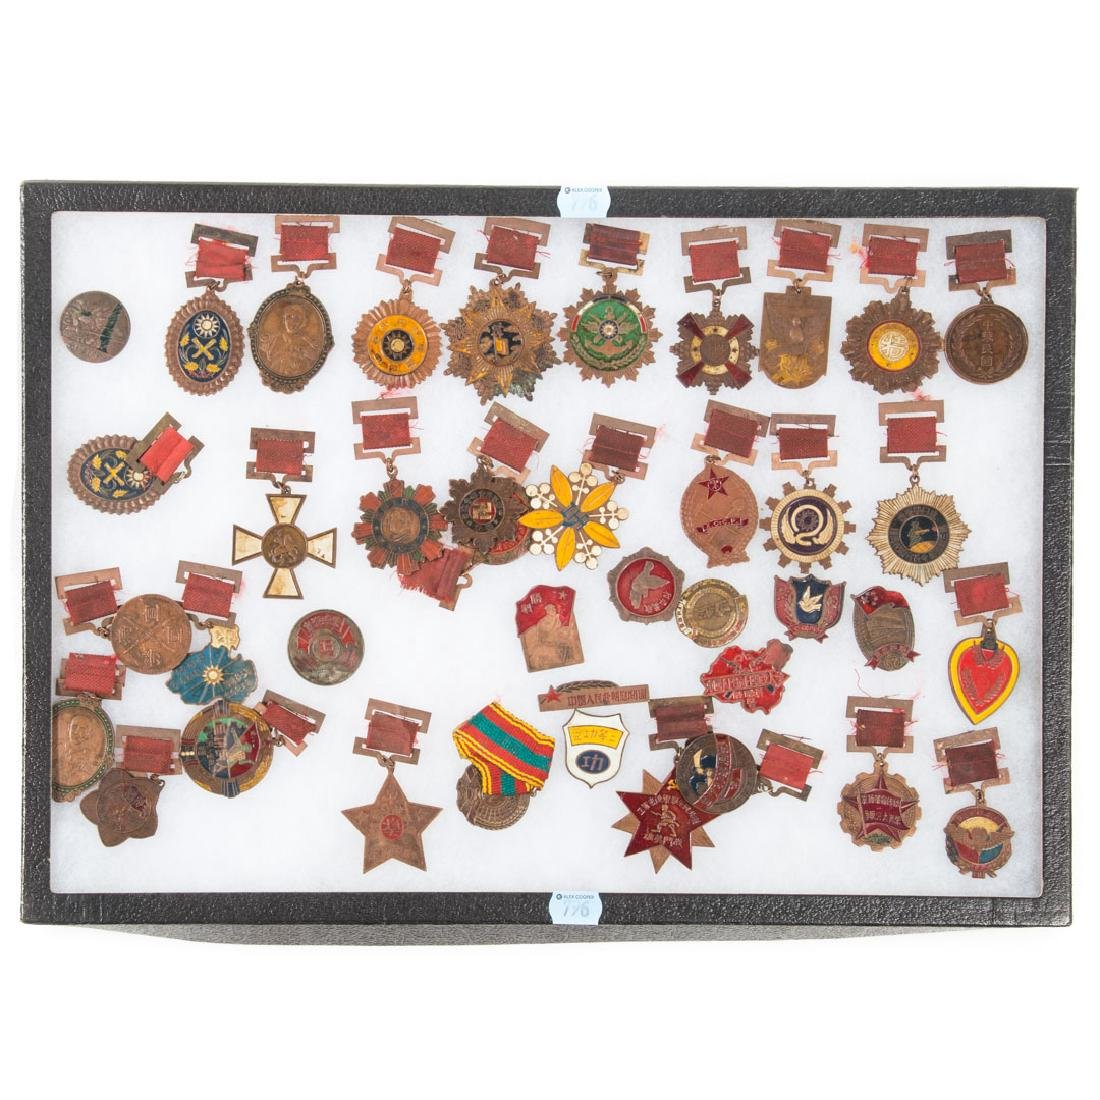 Collection of Chinese military medals